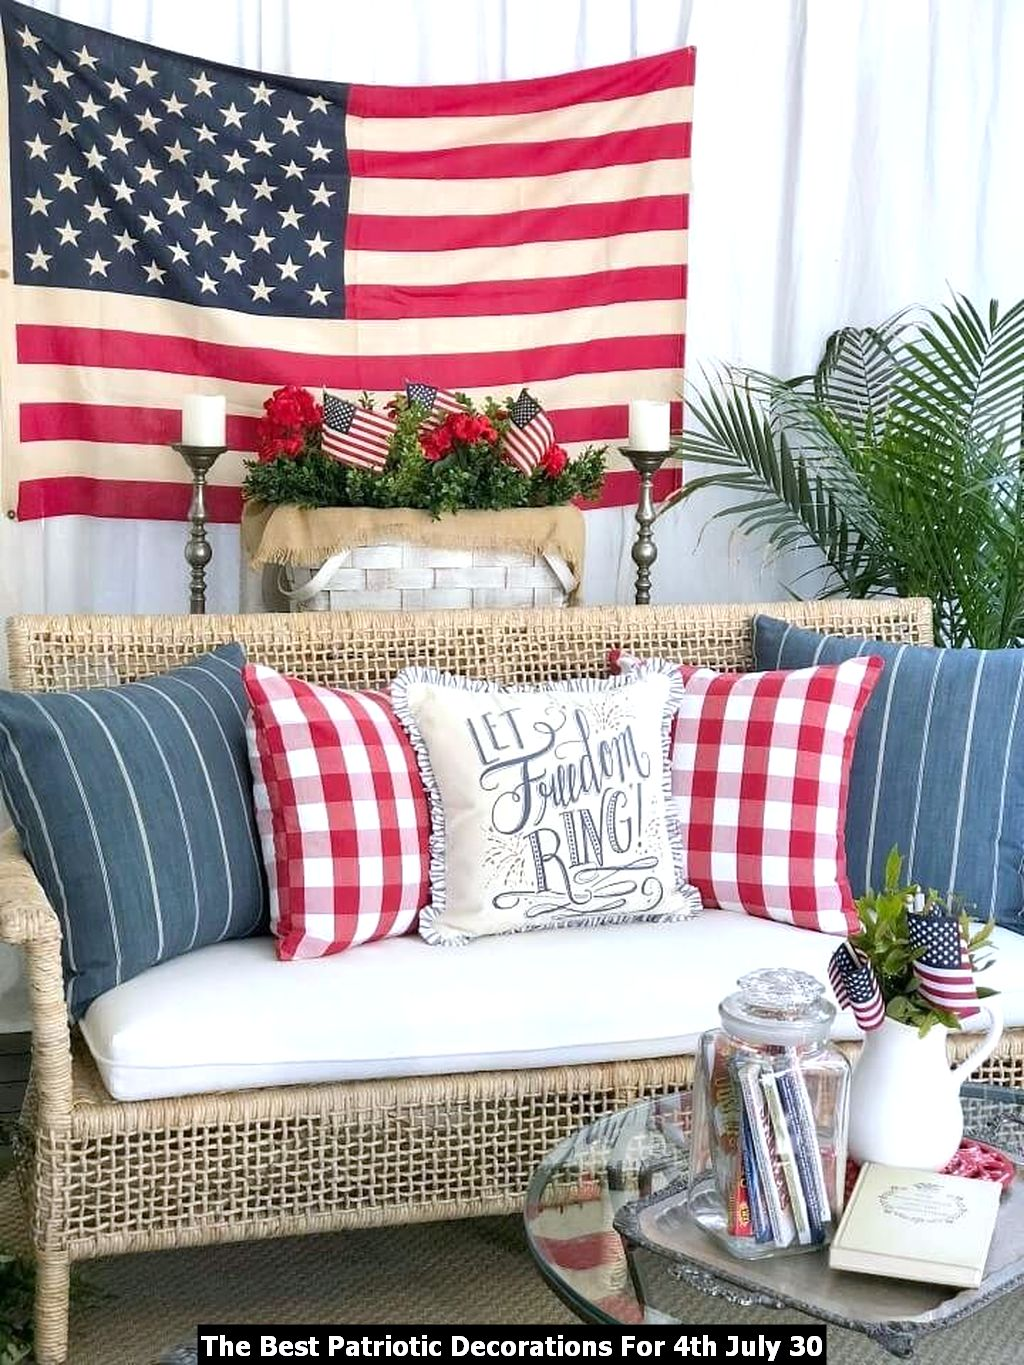 The Best Patriotic Decorations For 4th July 30